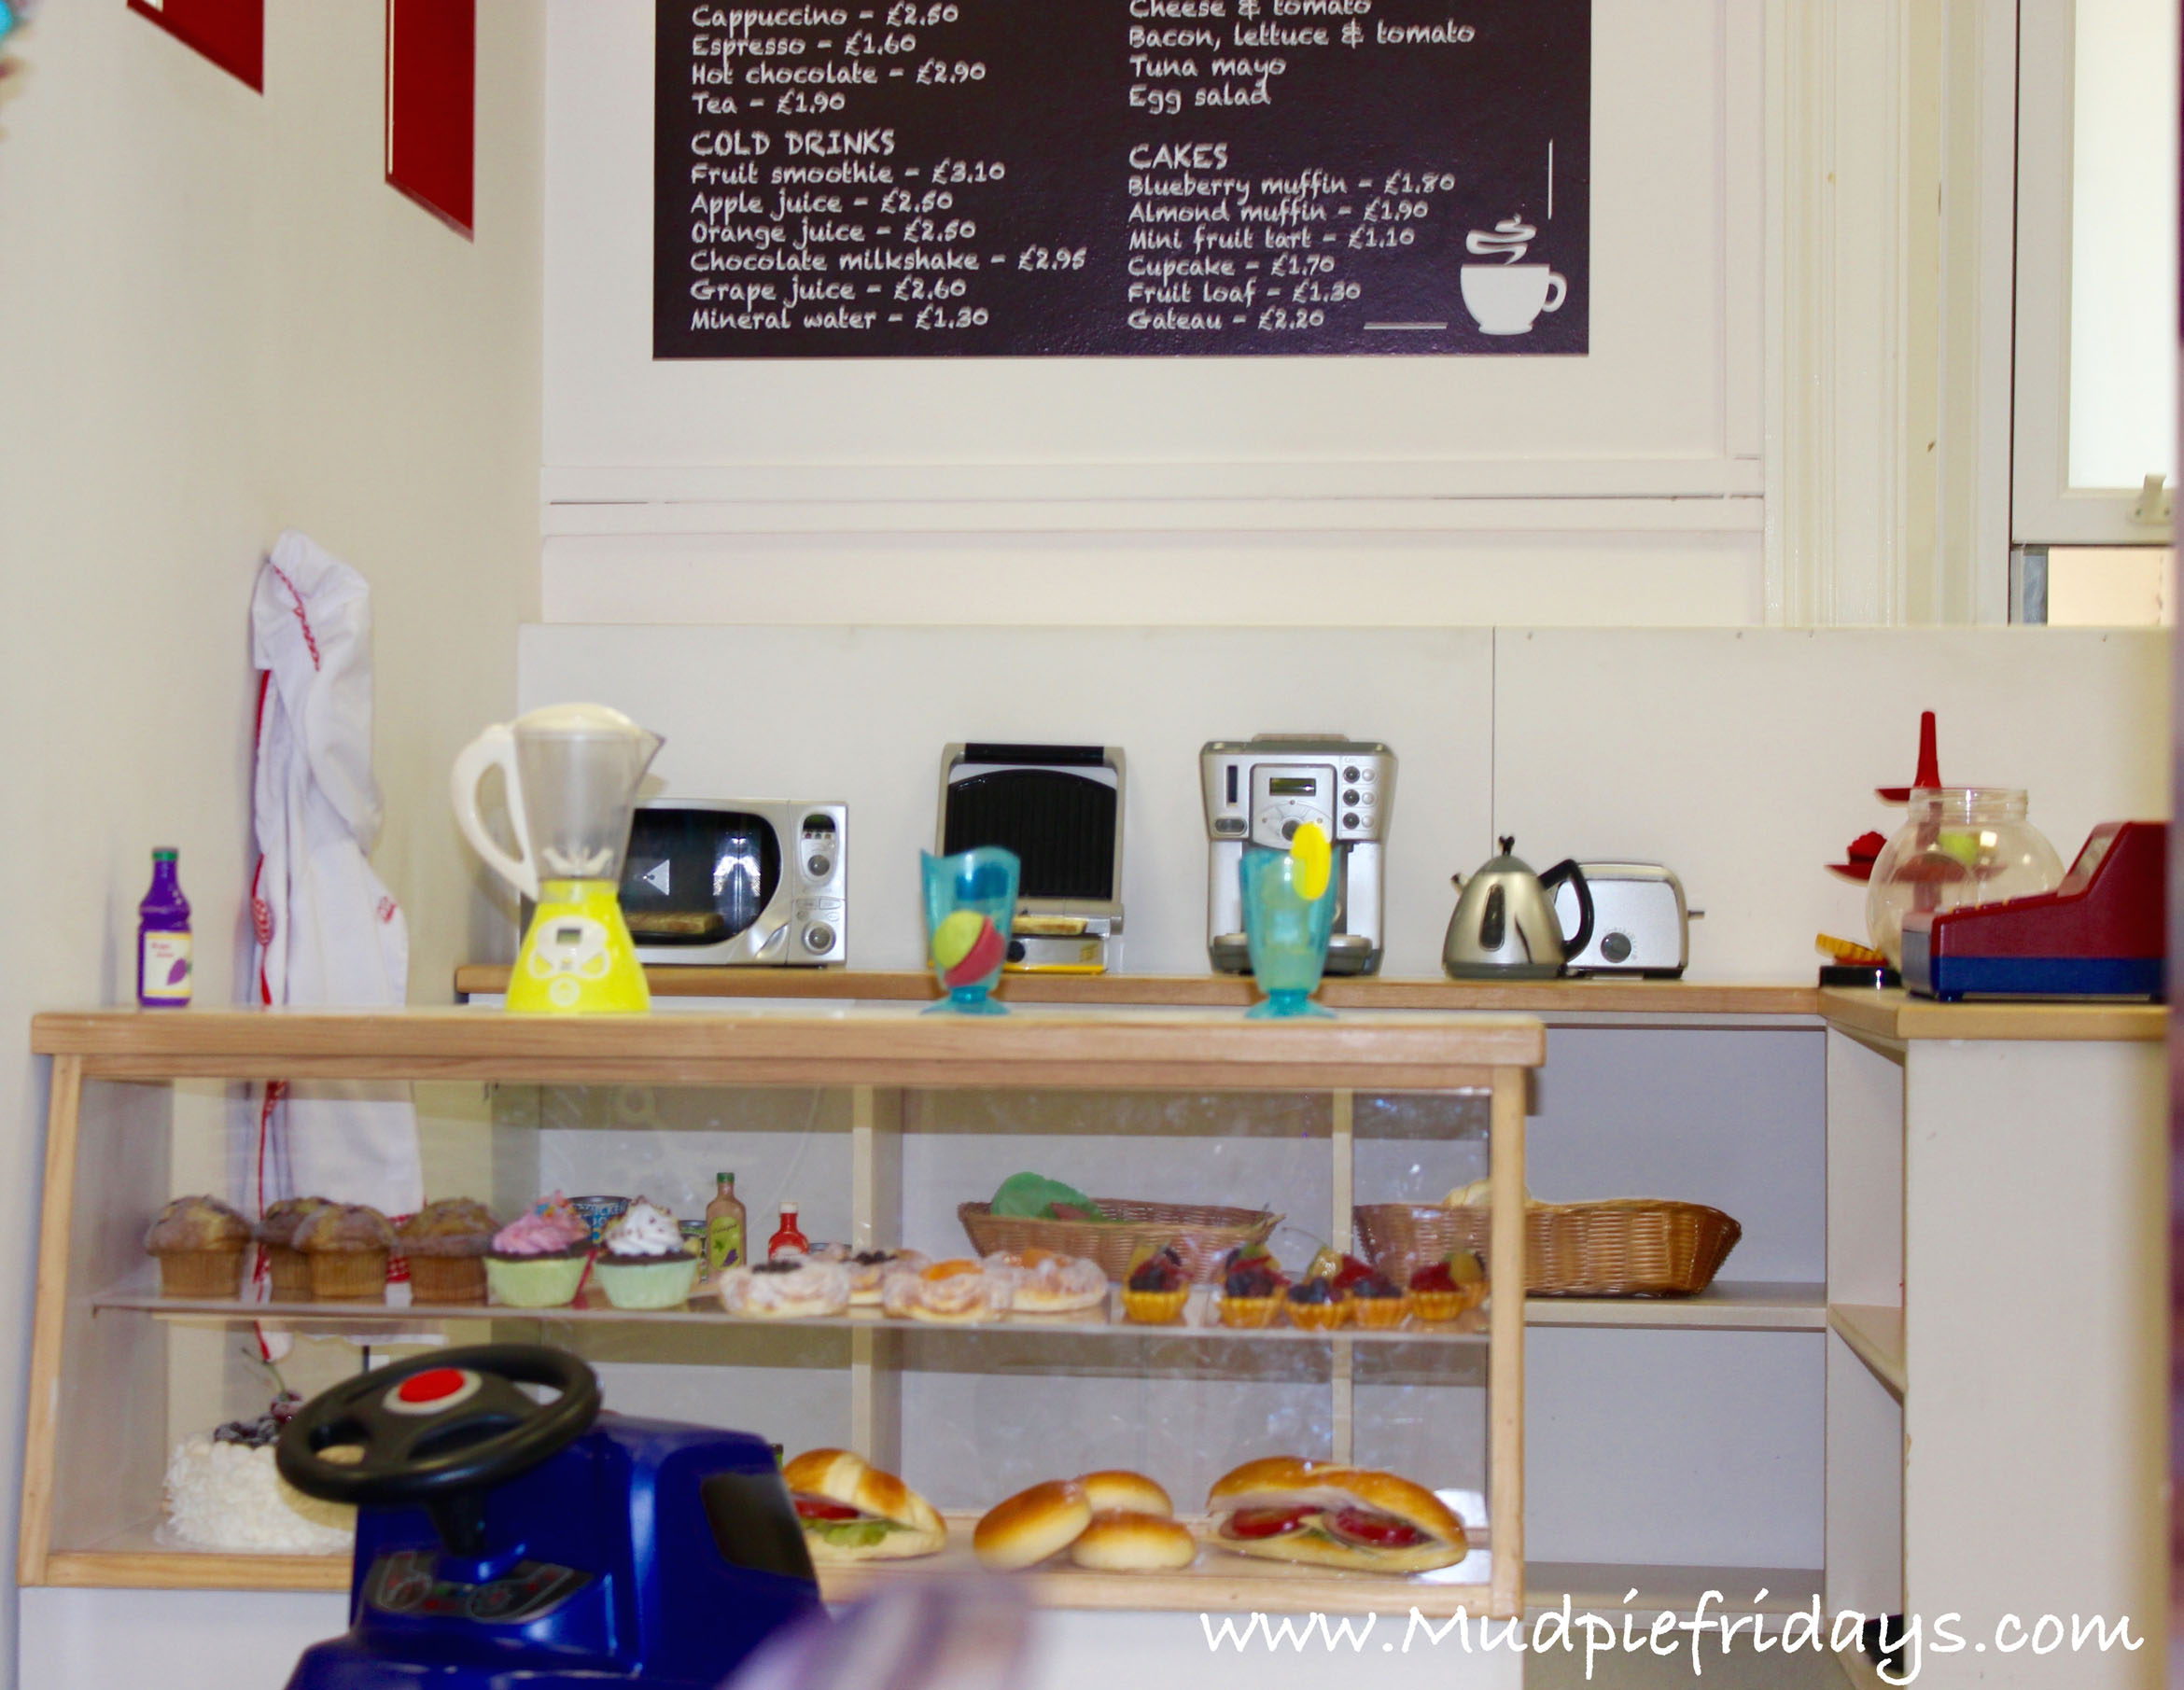 Role Play Cafe at Little Streets